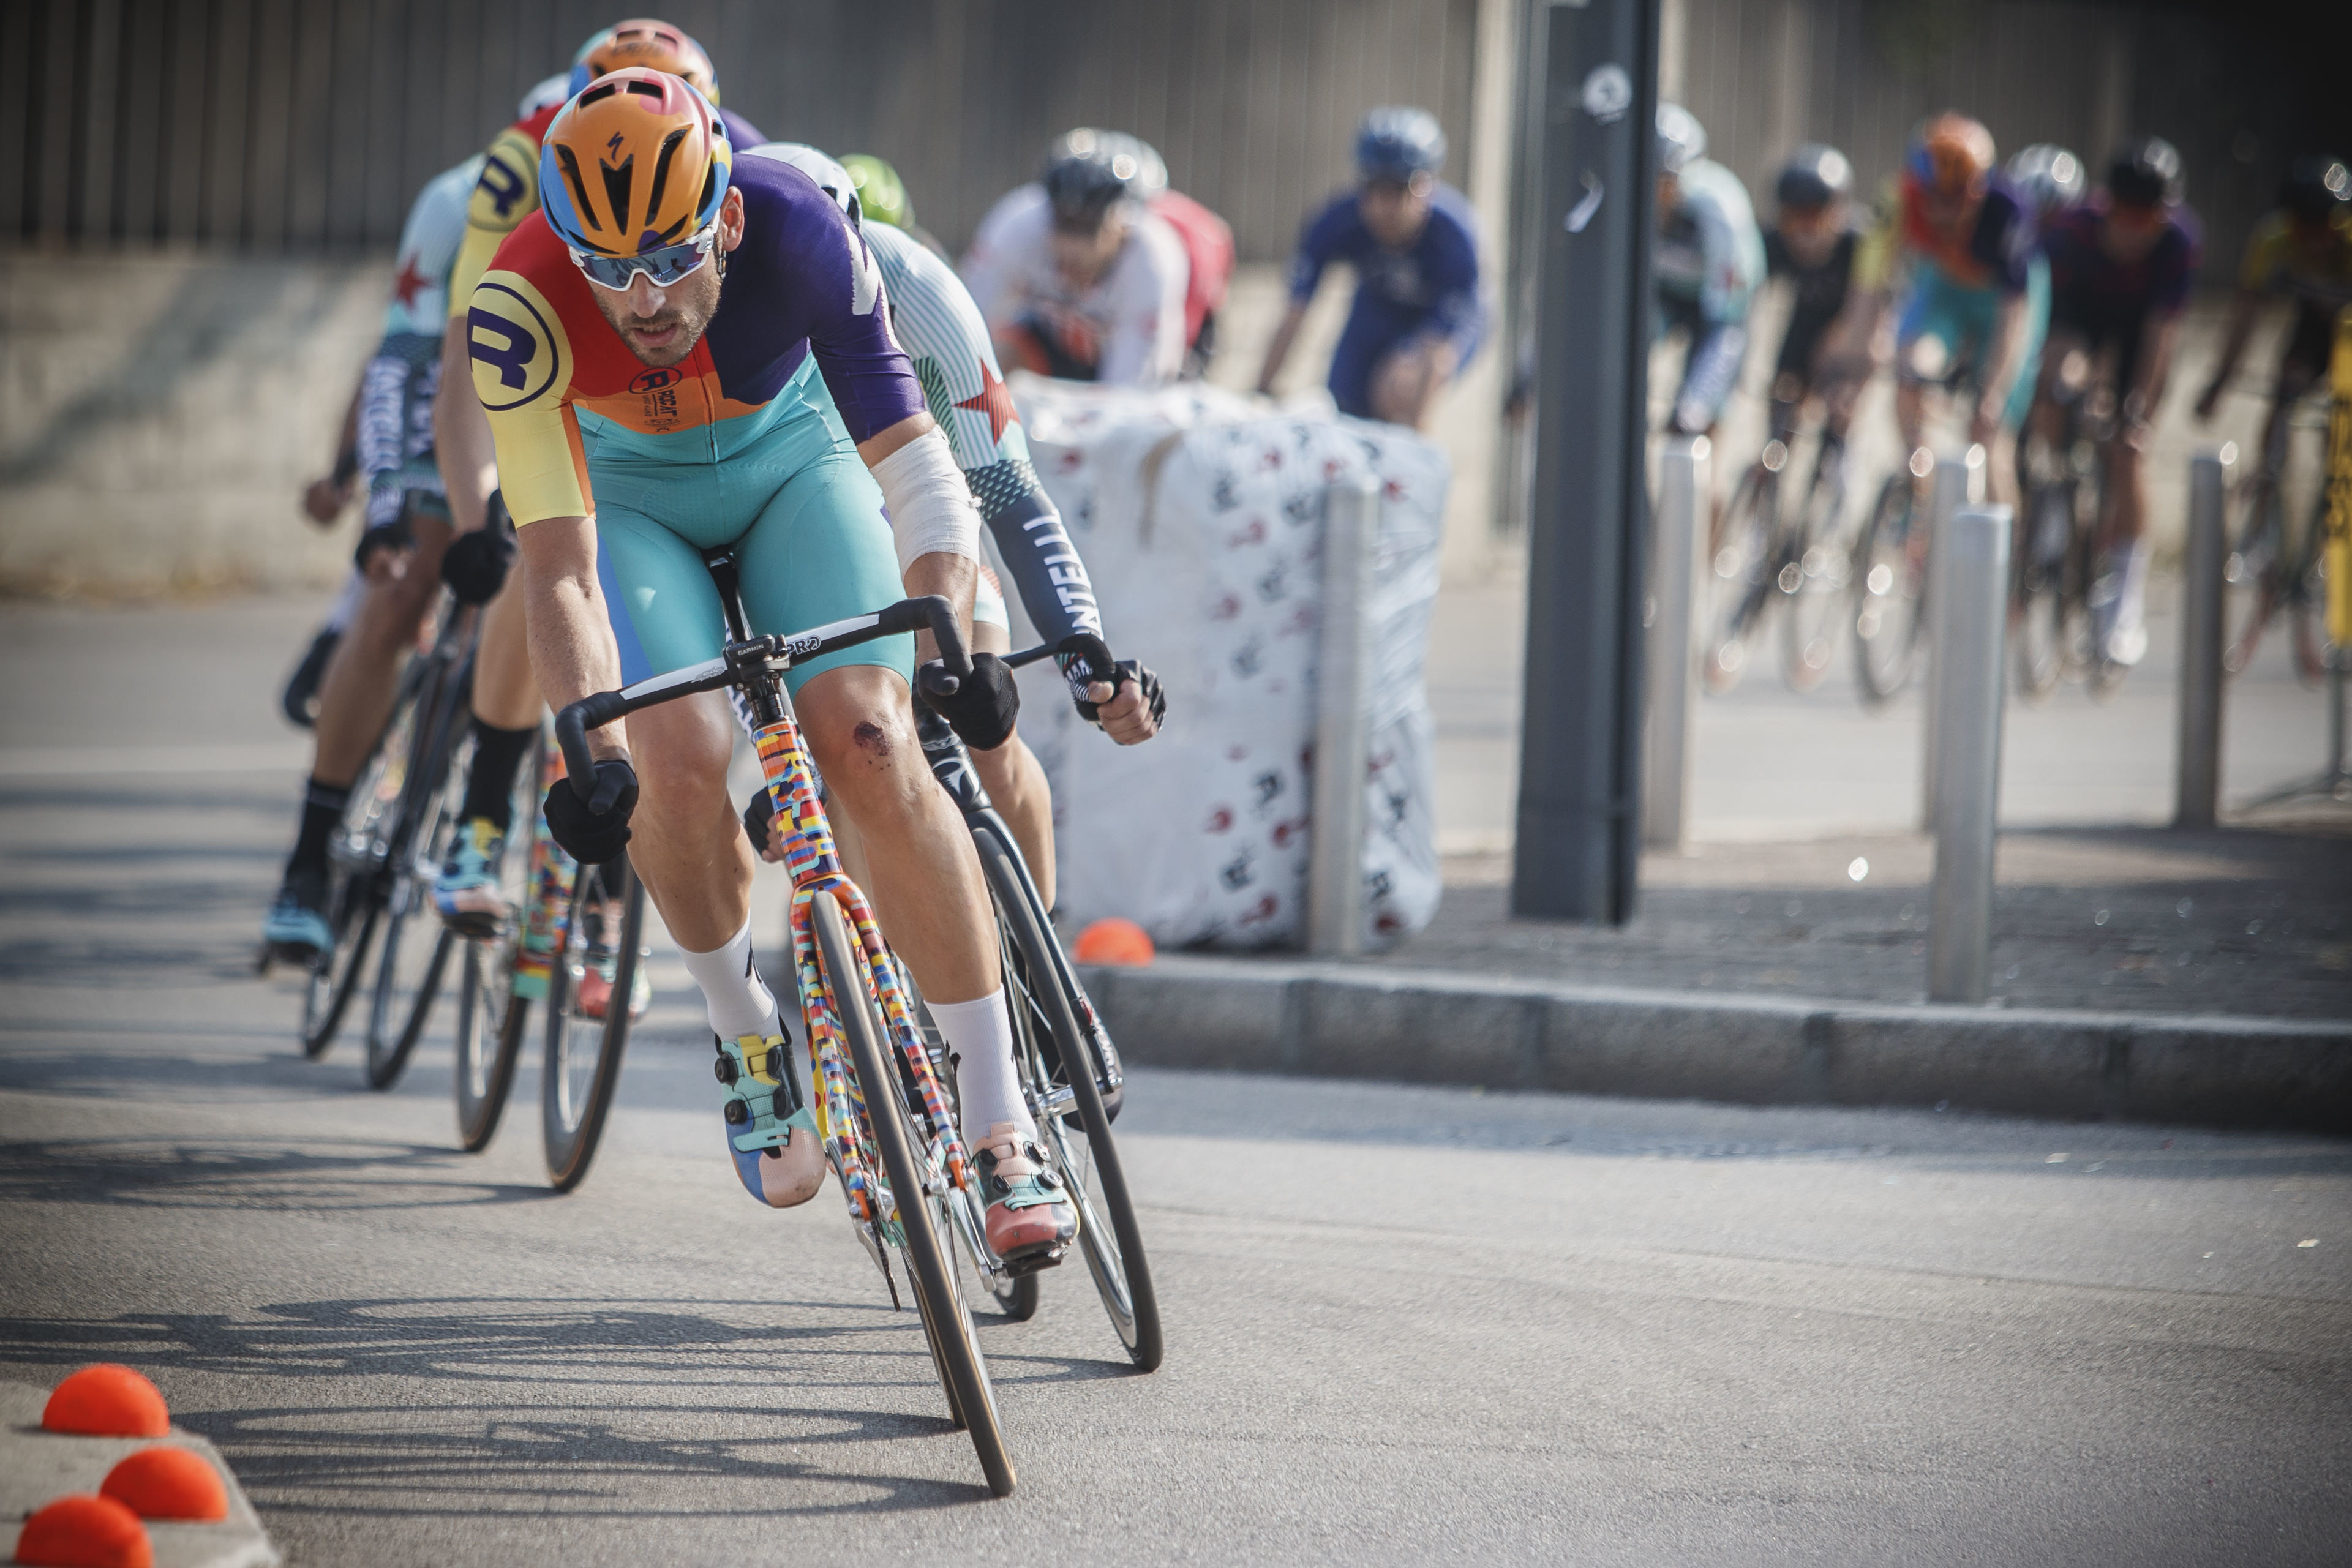 Red Hook Criterium announces cancellation of 2019 races